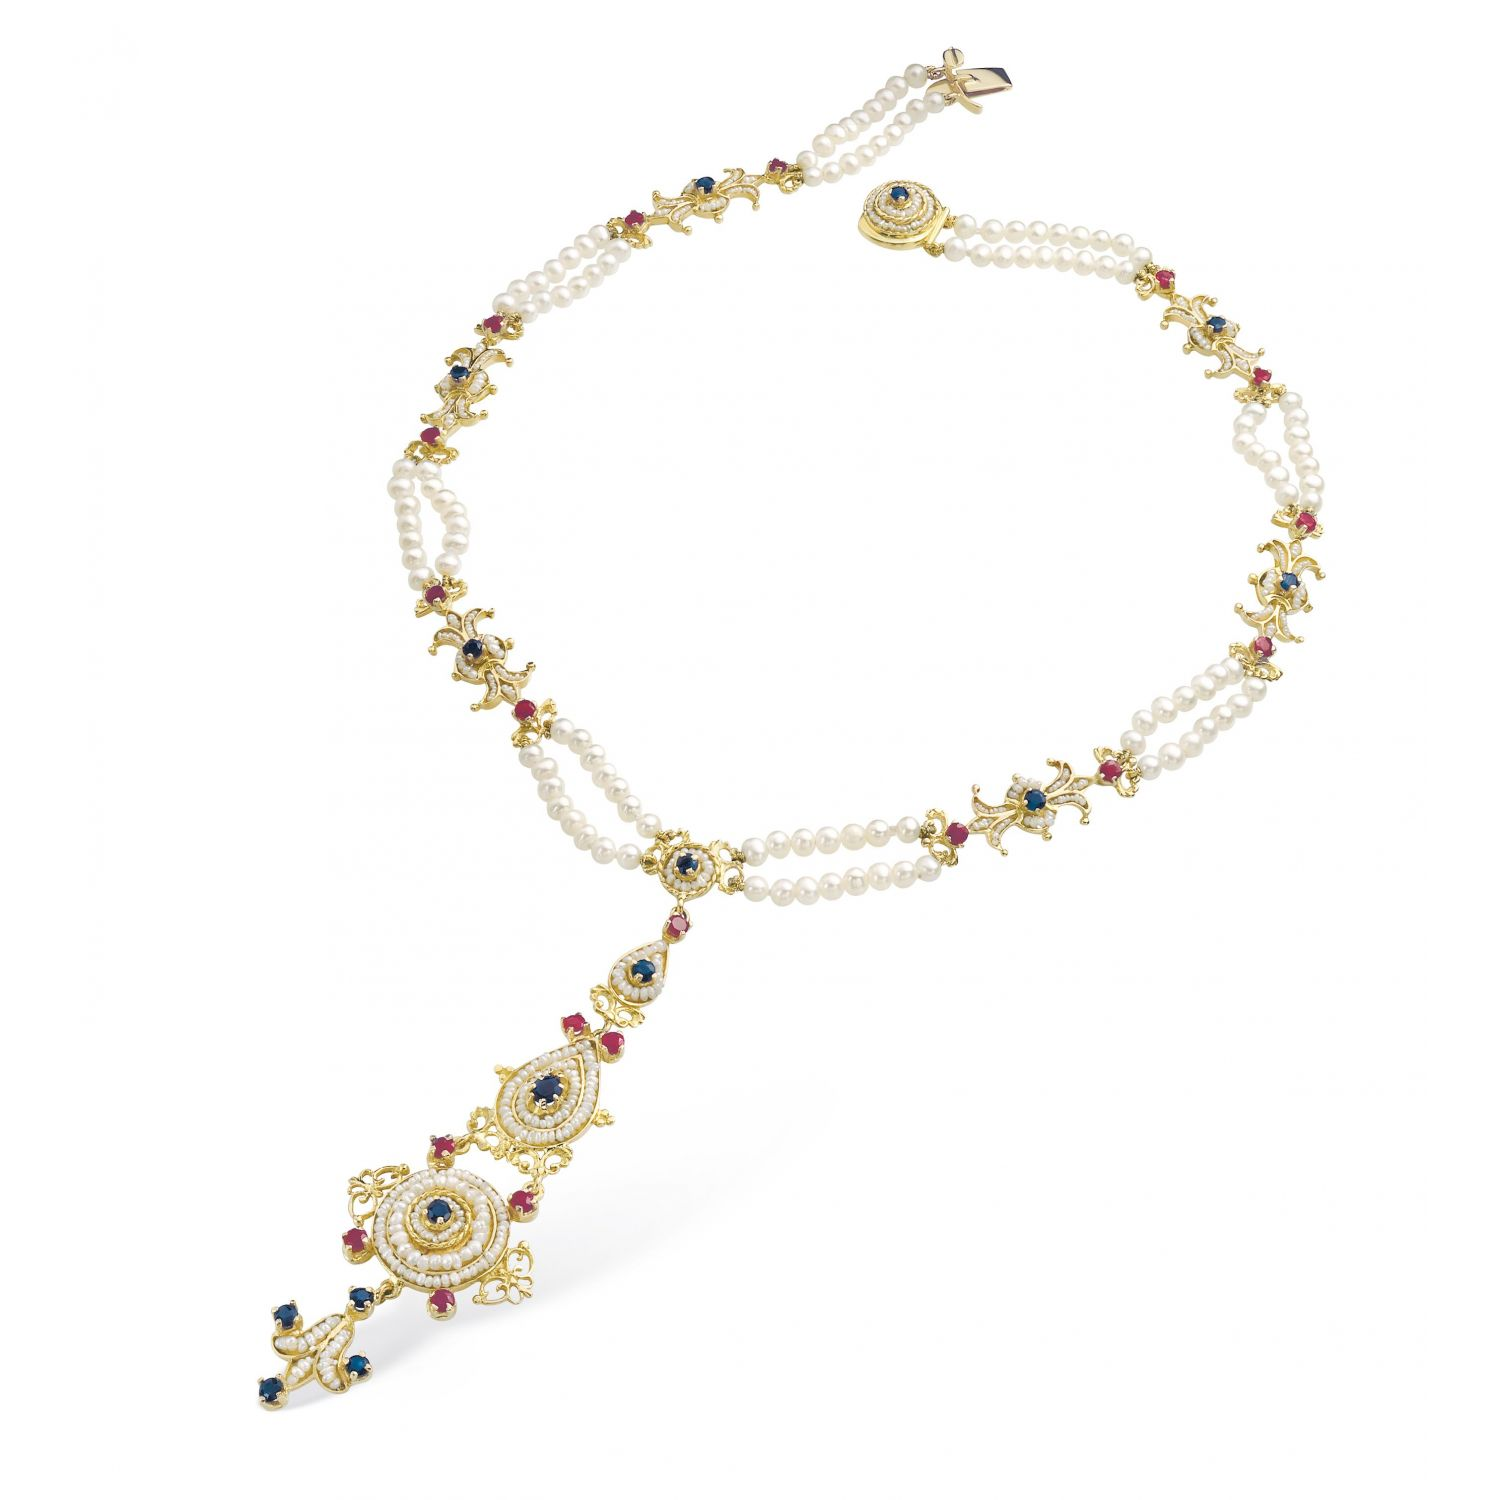 Gold Necklace with Pearls and precious Stones <span>13023</span>